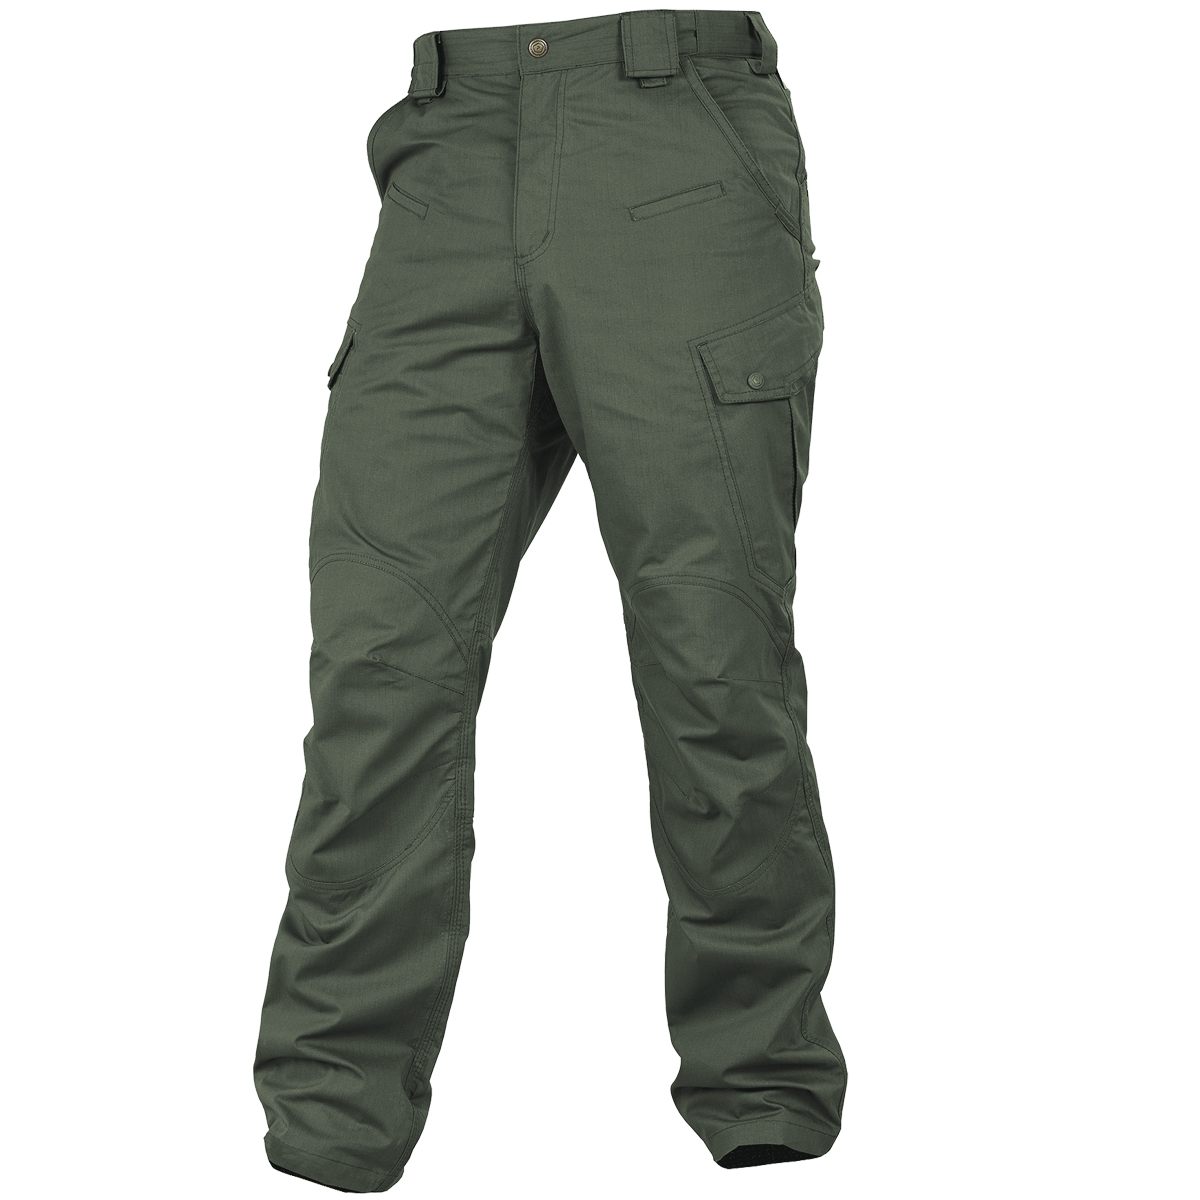 Pentagon Leonidas Tactical Pants Camo Green | Tactical | Military 1st